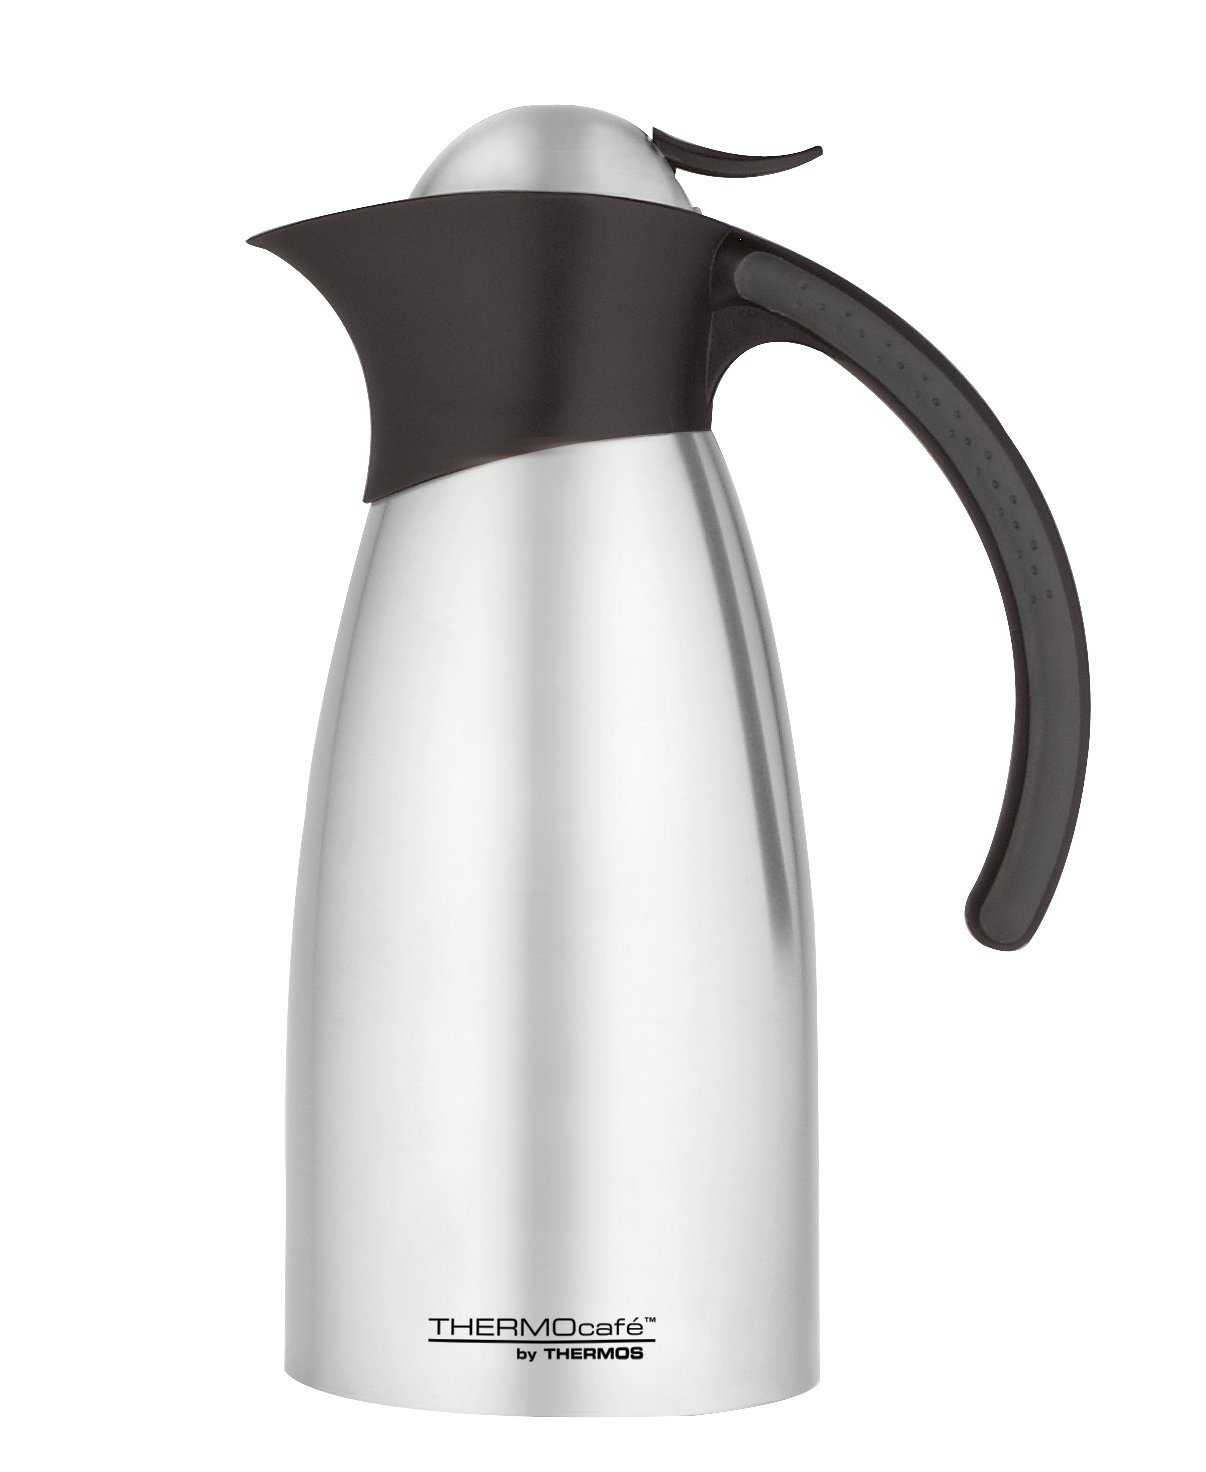 thermos thermocafe 1 0 litre stainless steel swan carafe ebay. Black Bedroom Furniture Sets. Home Design Ideas